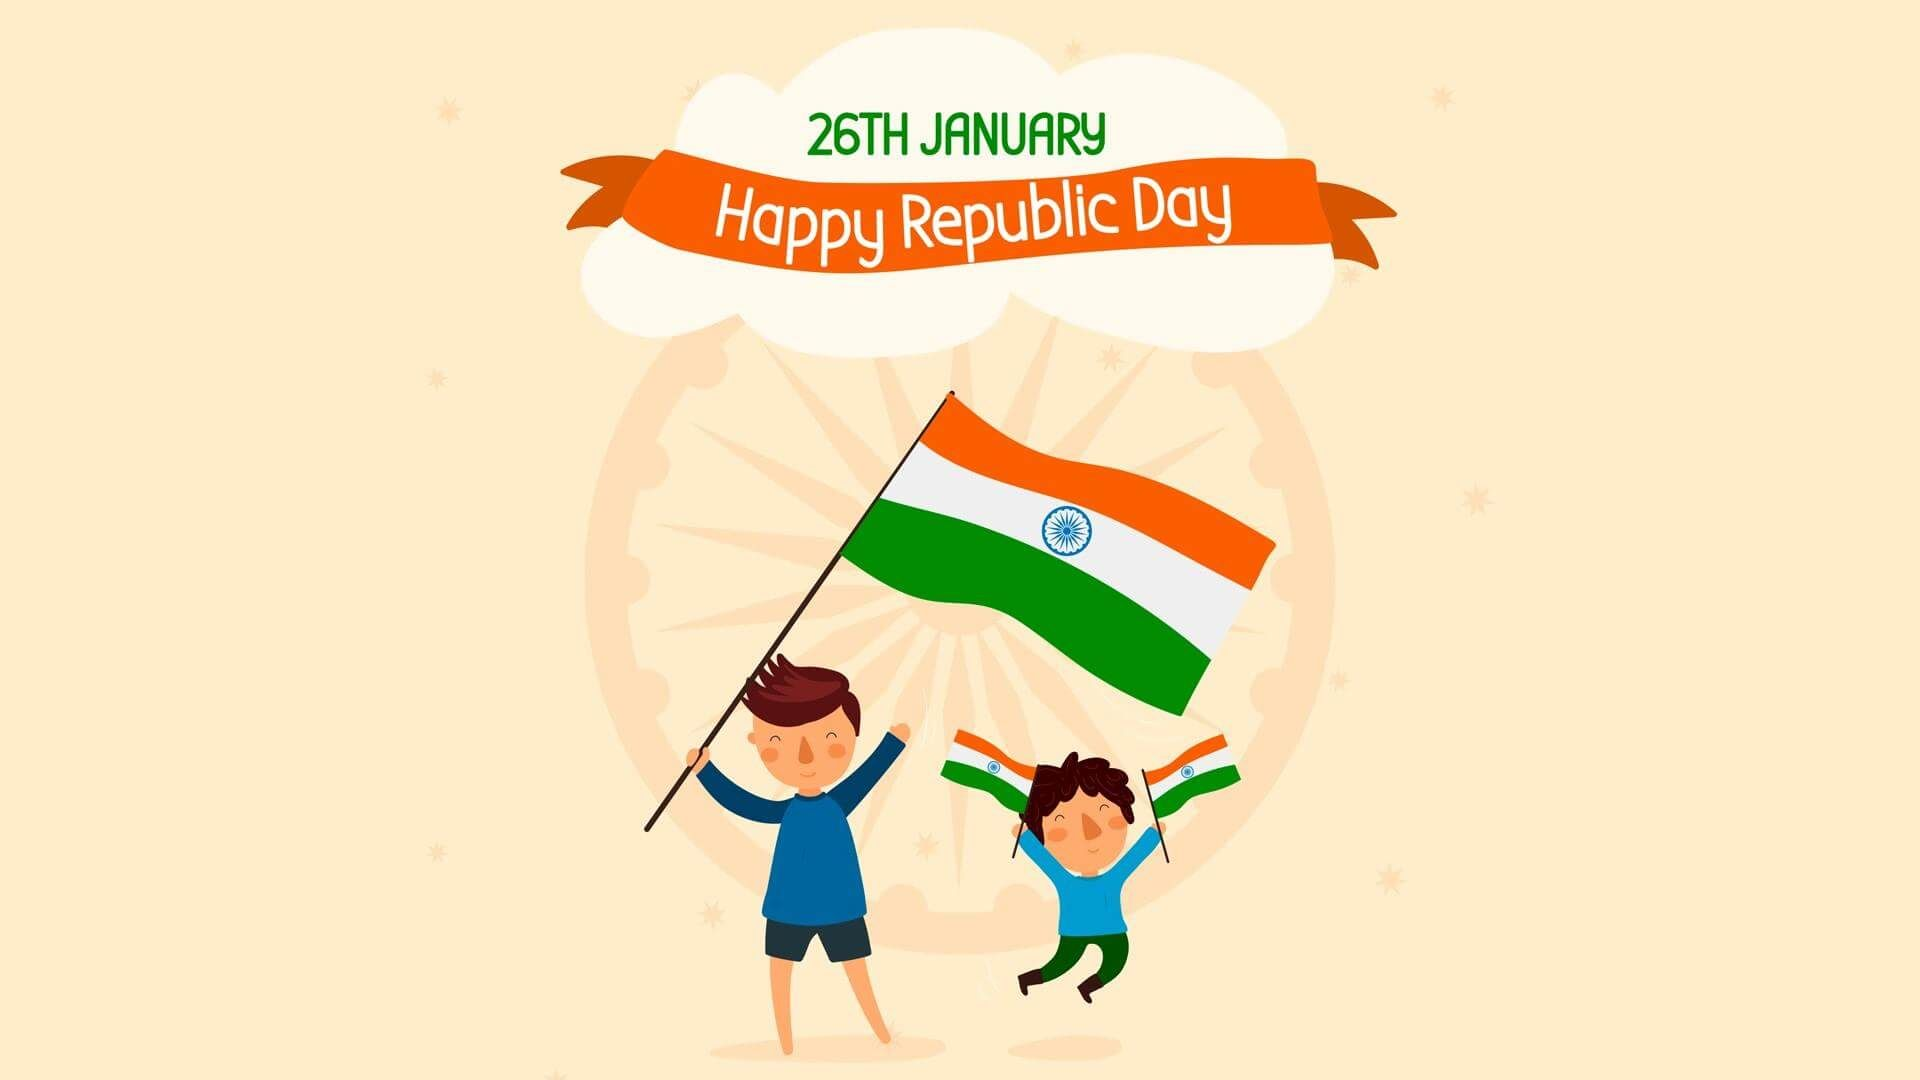 50 Happy Republic Day Images And Photo Collection 2020 List Bark Happy Republic Day Wallpaper Republic Day India Republic Day Images